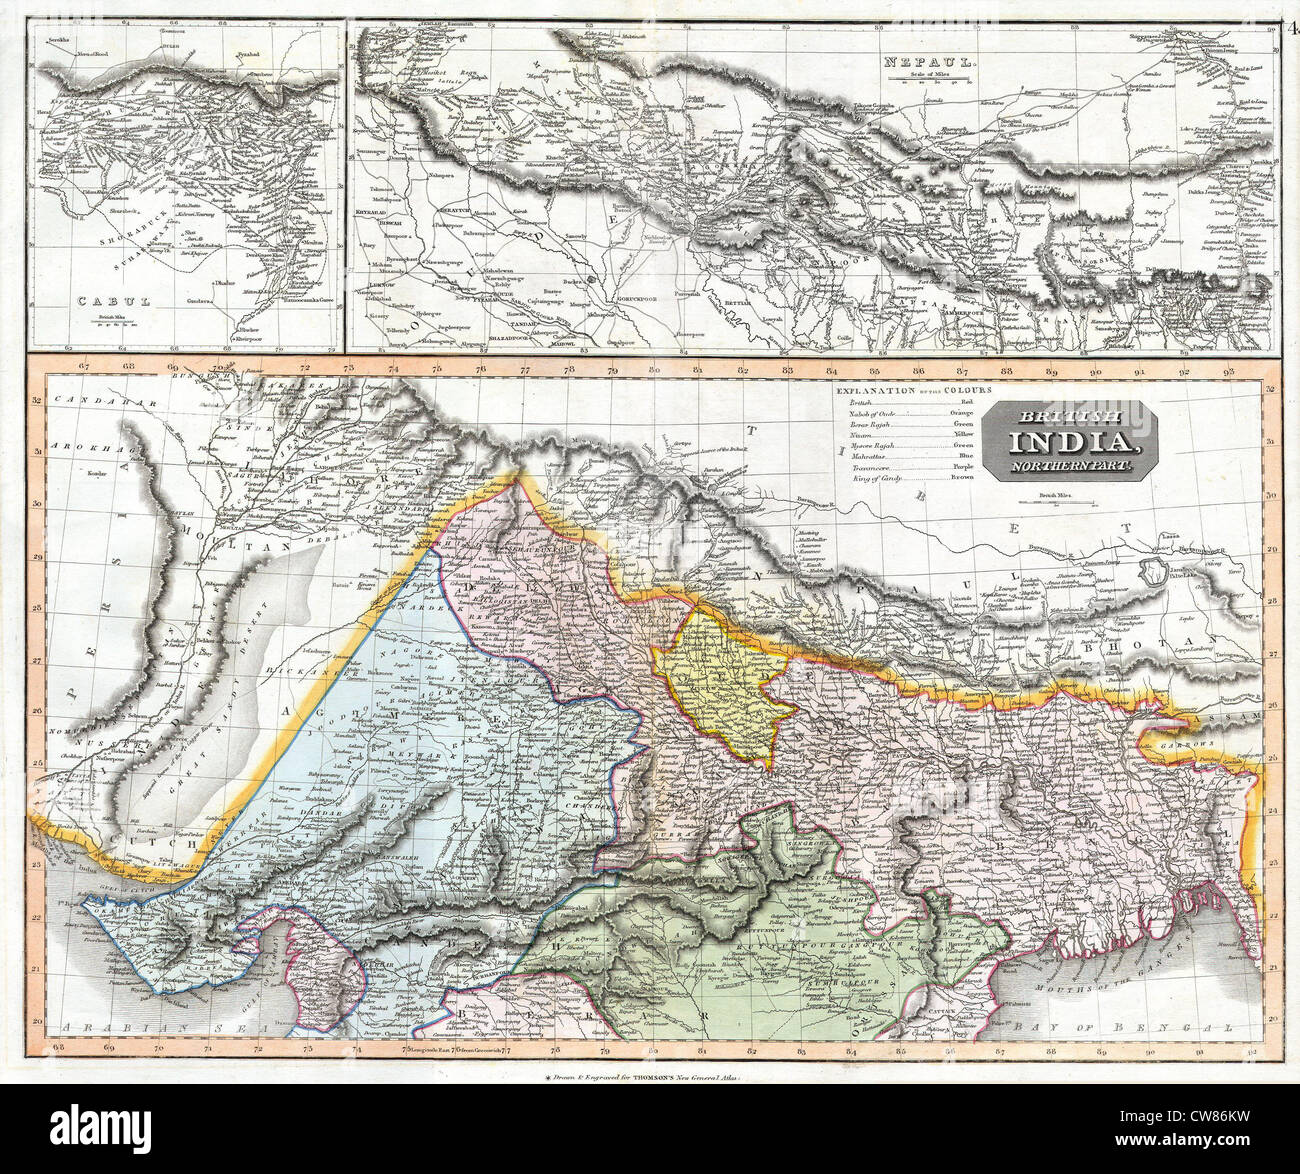 1814 thomson map of northern india and nepal stock photo 49968013 1814 thomson map of northern india and nepal gumiabroncs Image collections